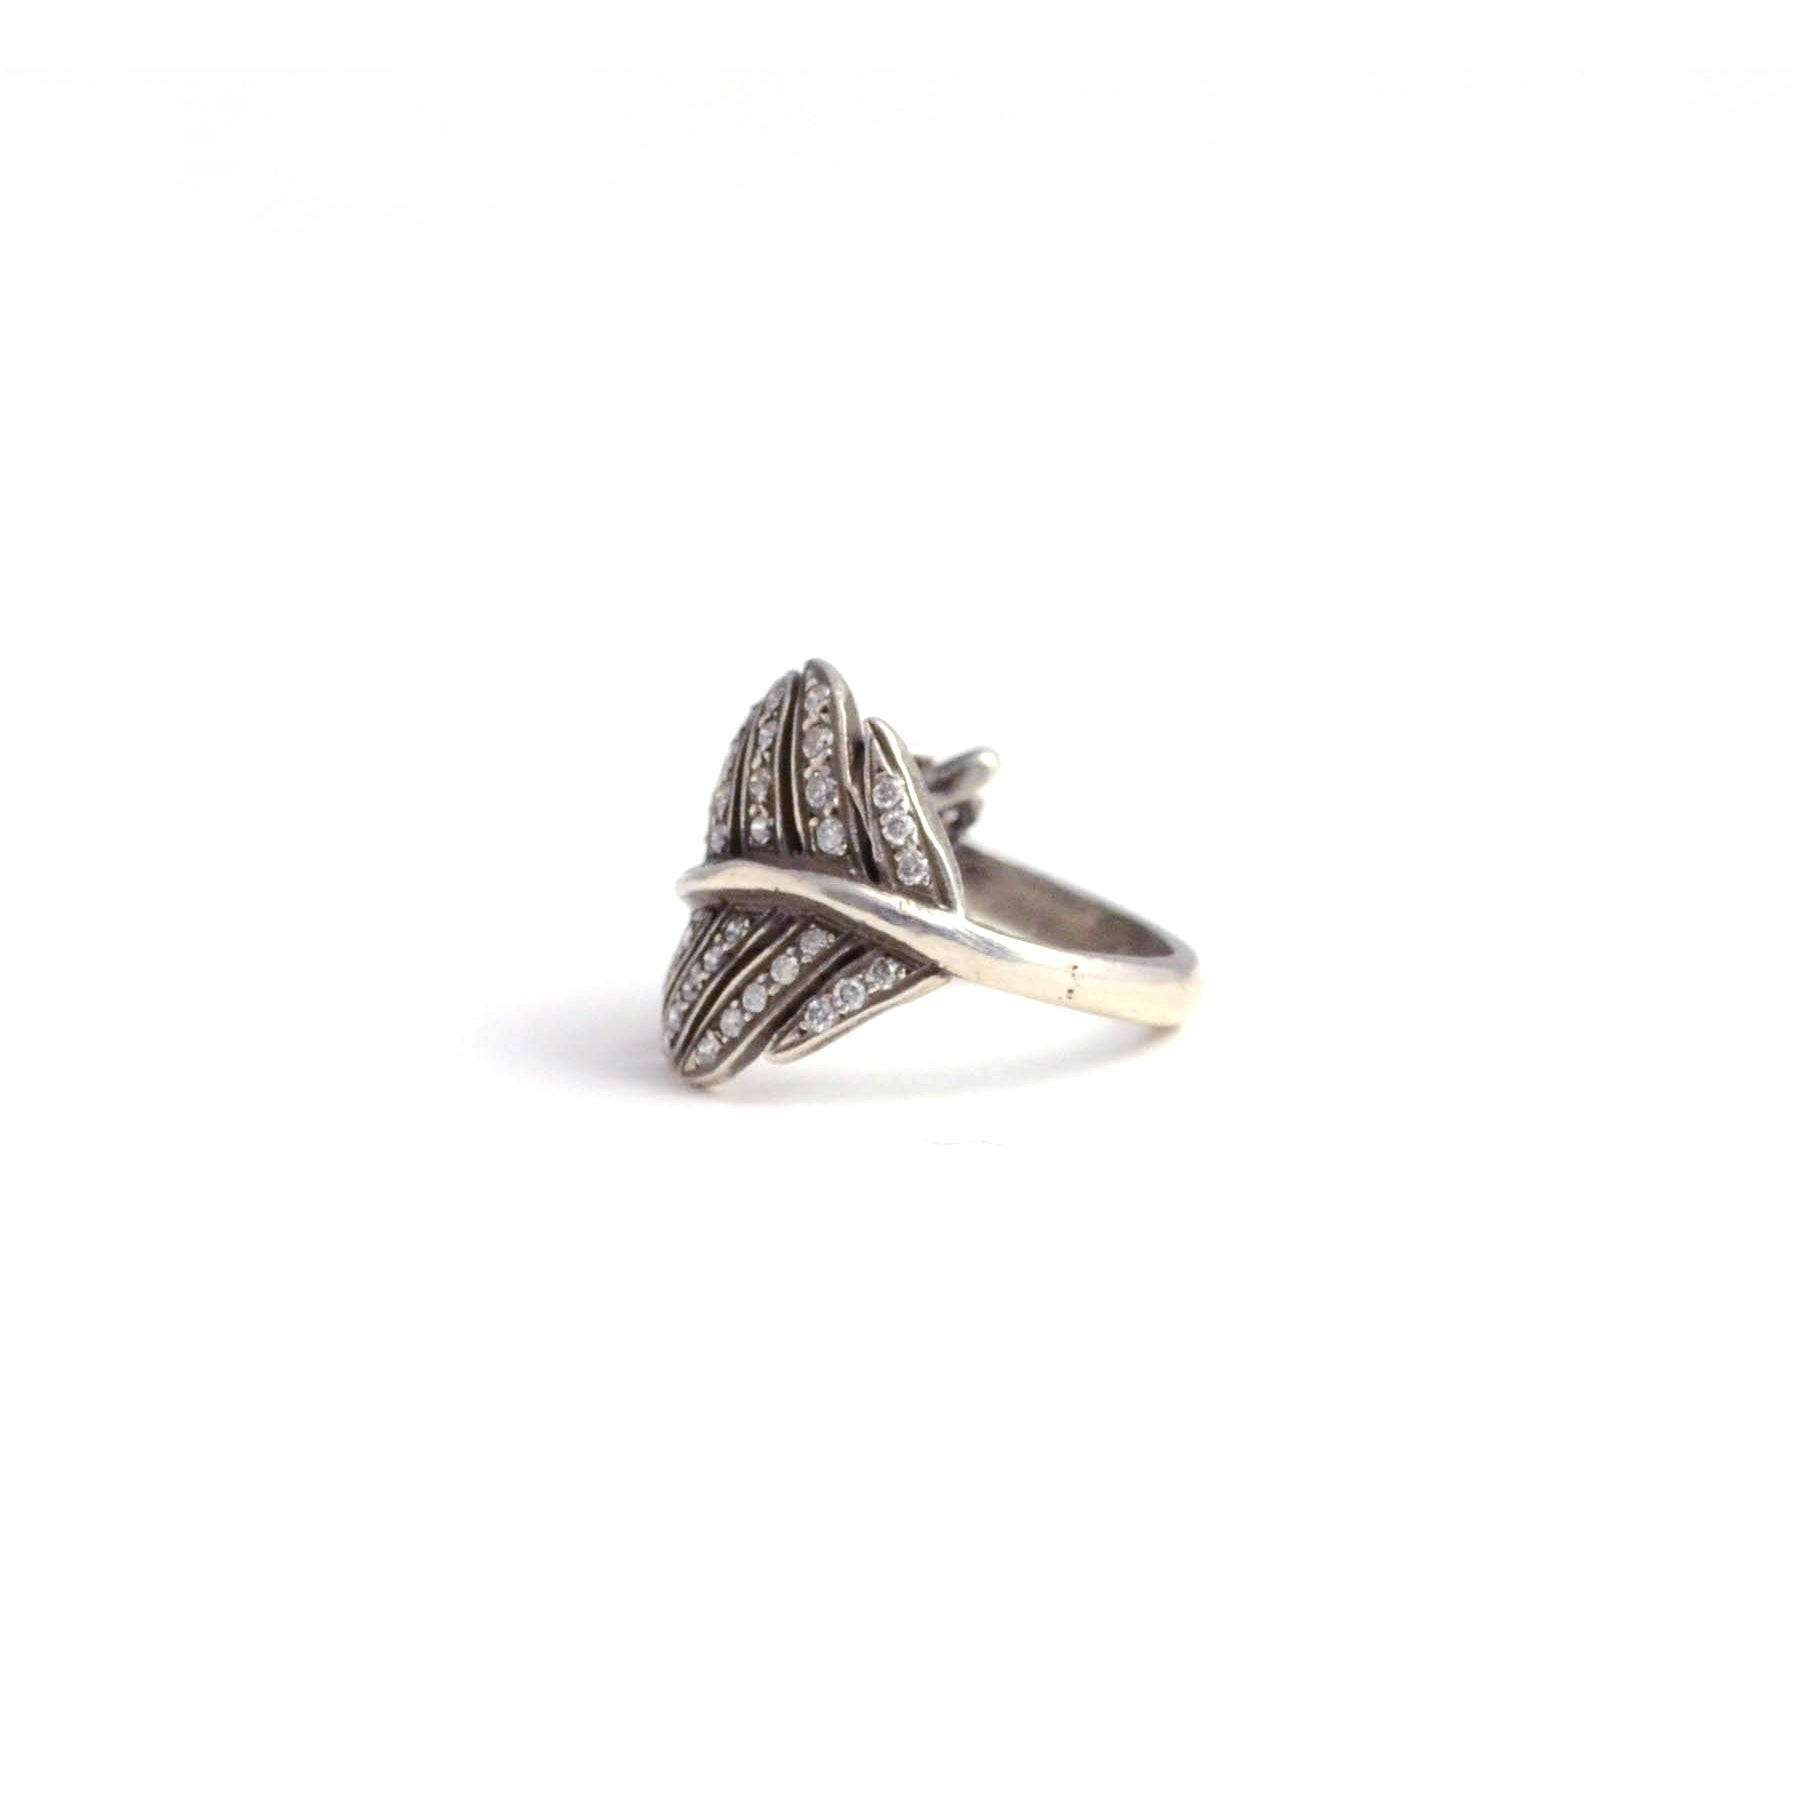 rit Design ring. A little bit vintage...a little bit edgy. Silver and diamonds give a gorgeous glow to this leaf shaped ring. side view.